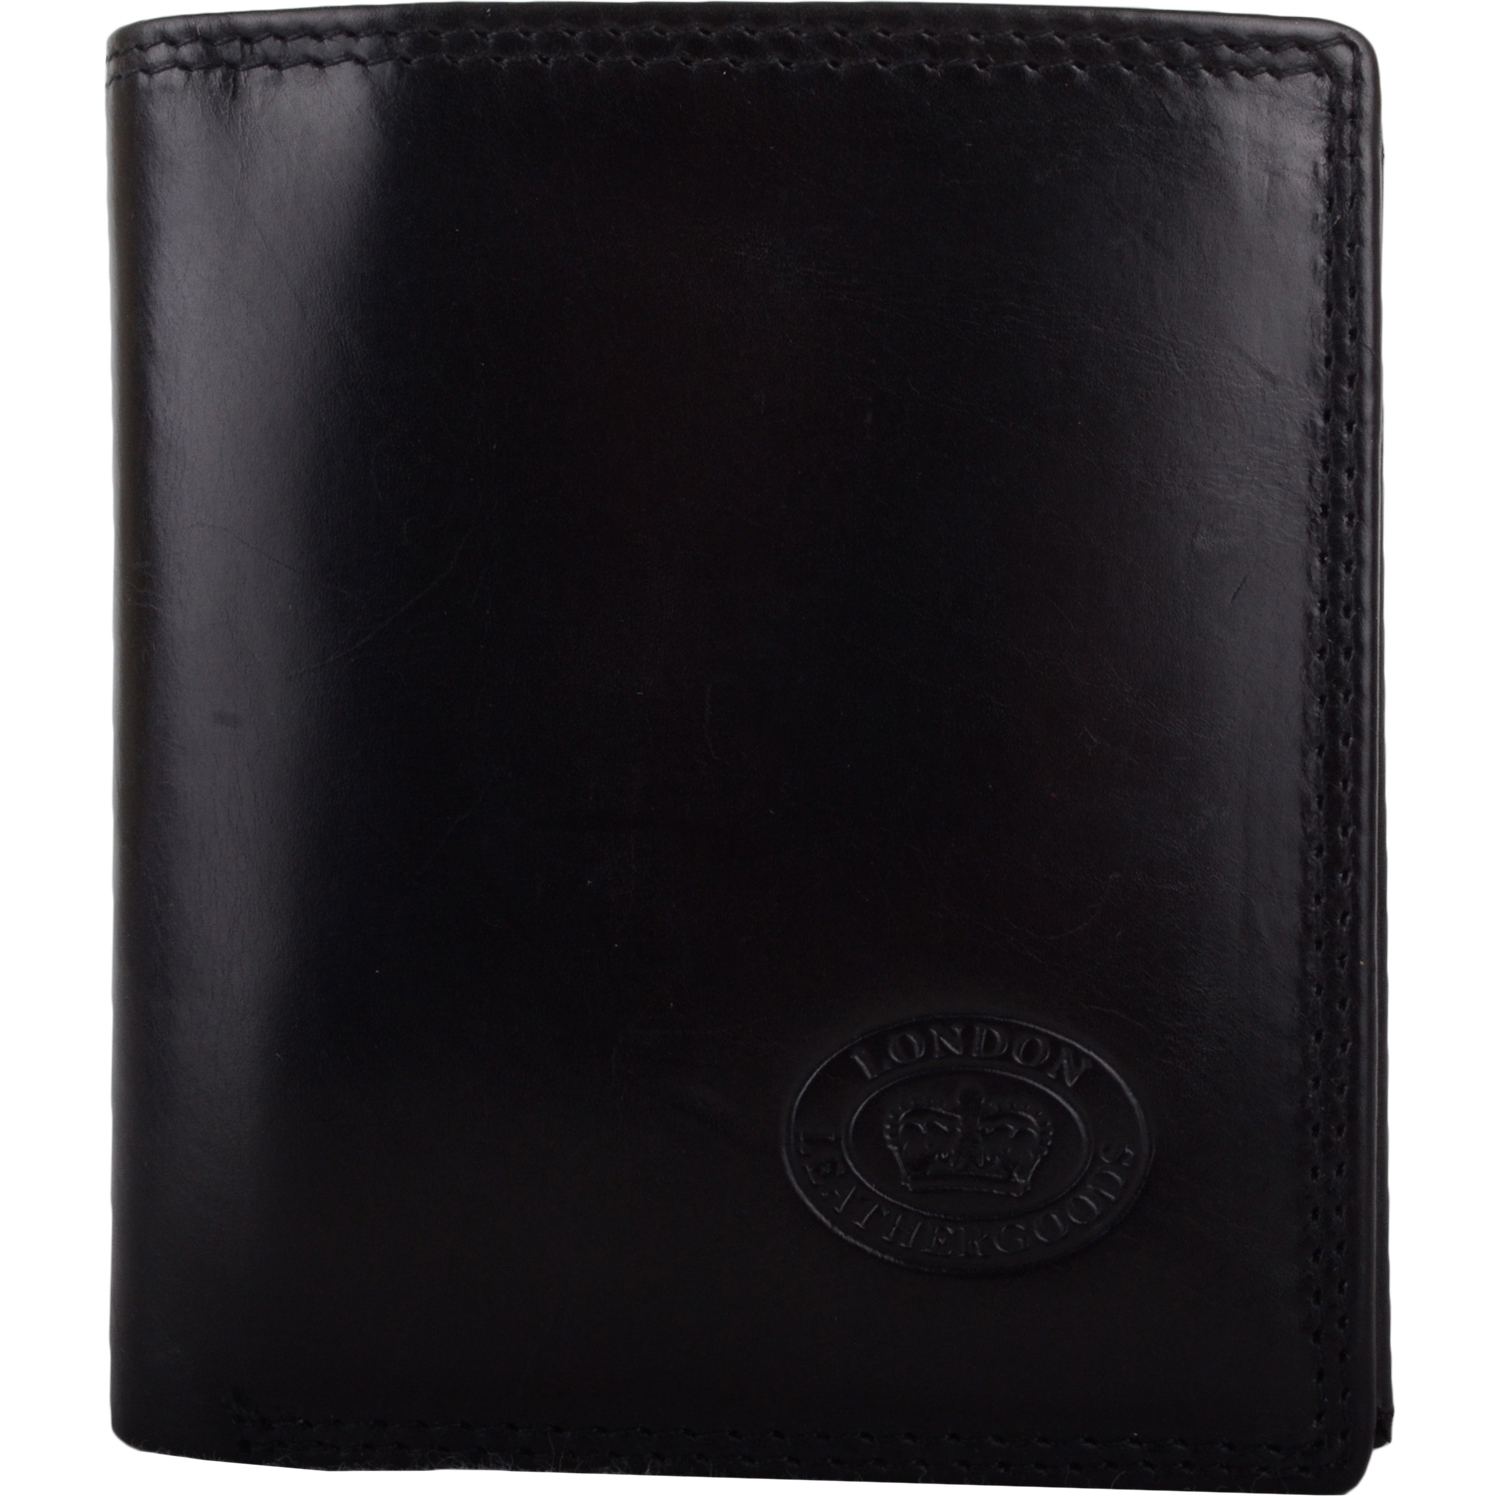 Leather RFID Protected Coin / Money Holder - Black